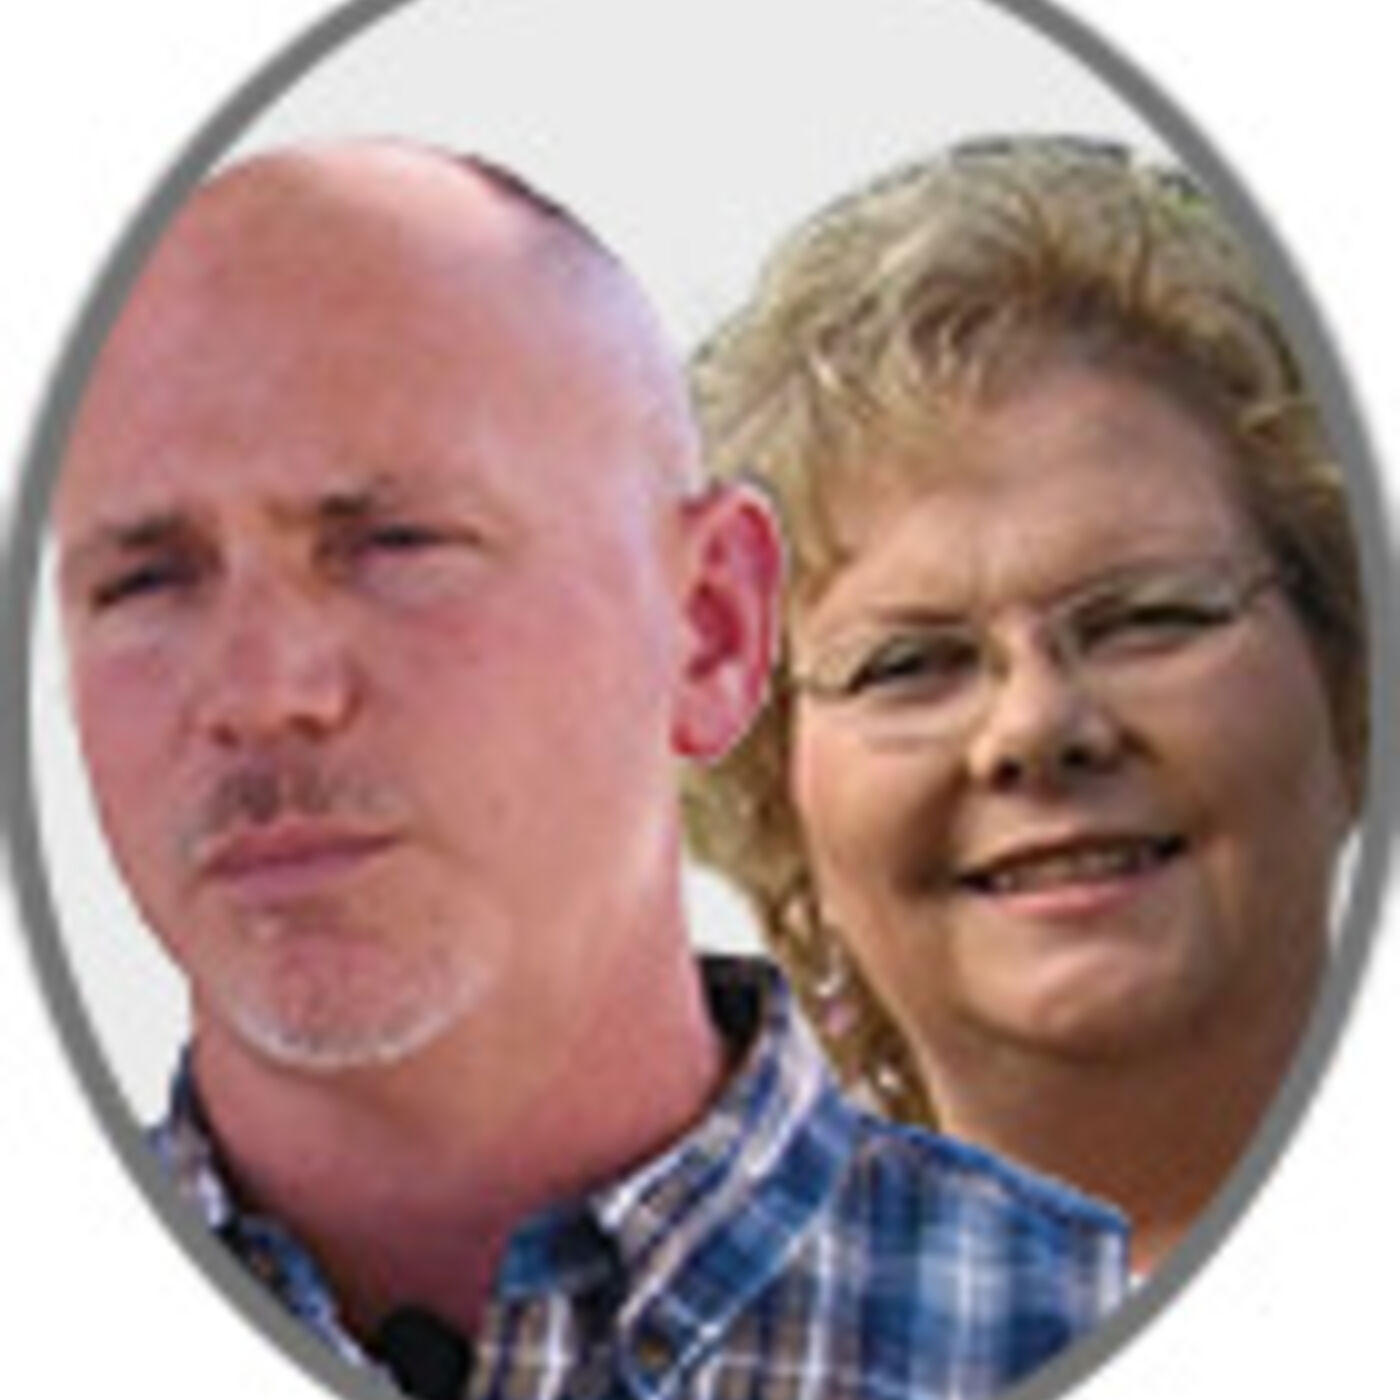 #15 - Two veterans of HDPE use, Josh VanDiver runs the wastewater utility for Redding CA and shares significant use insights.  The second guest is Holly Link, recently retired from Colorado Springs Utilities where she was the resident HDPE expert.